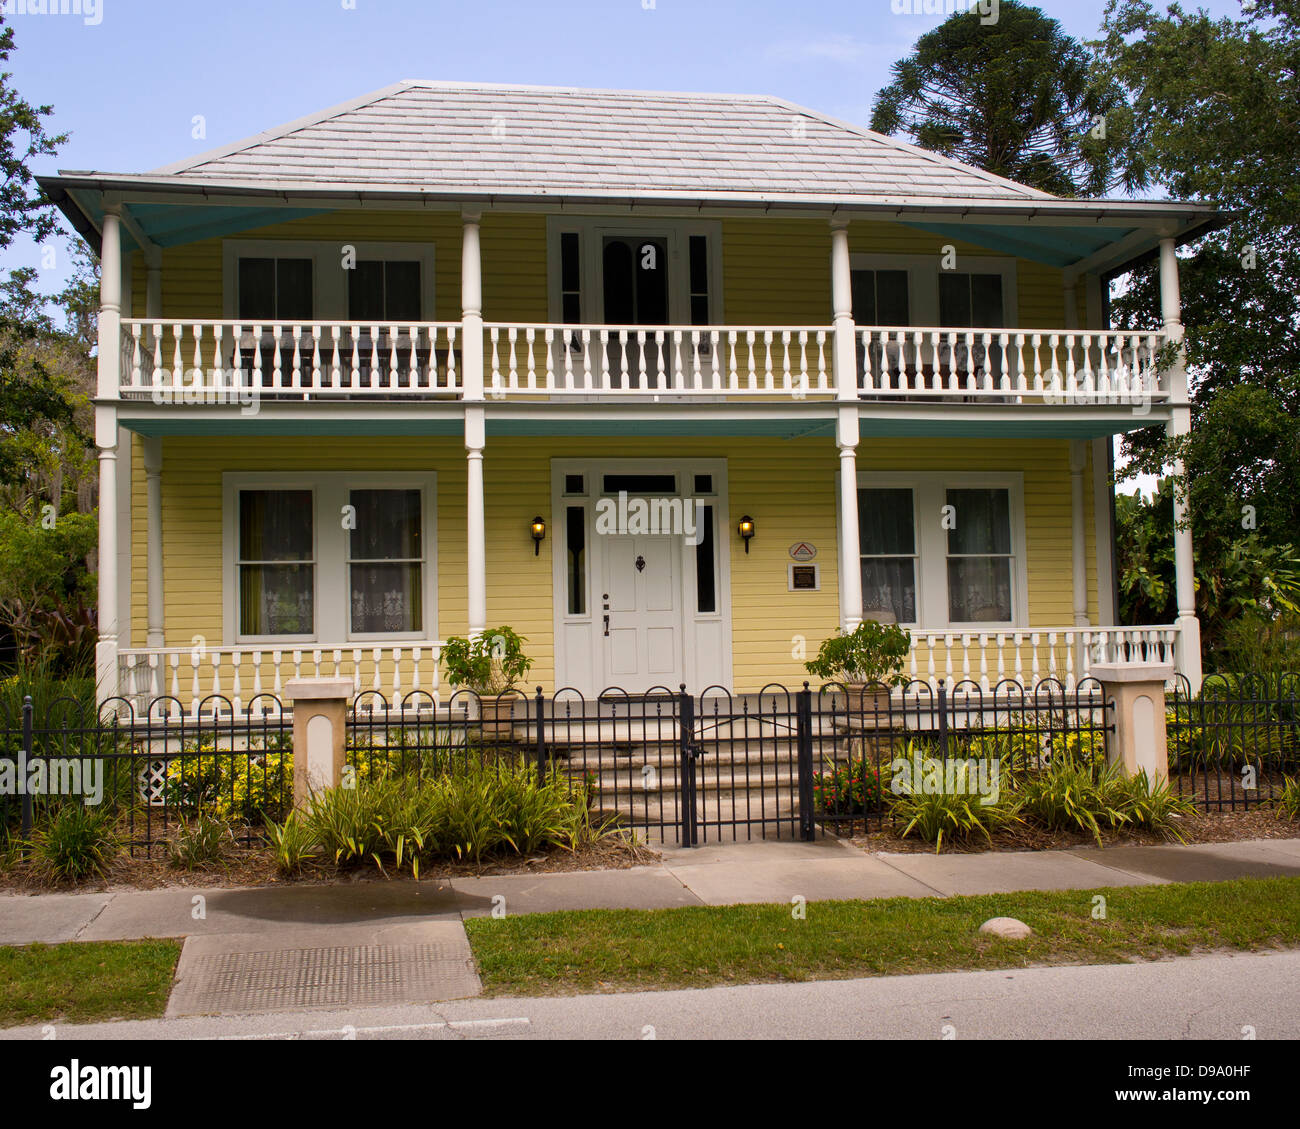 James Wadsworth Rossetter house in the Eau Gallie section of Melbourne Florida in Brevard County - Stock Image